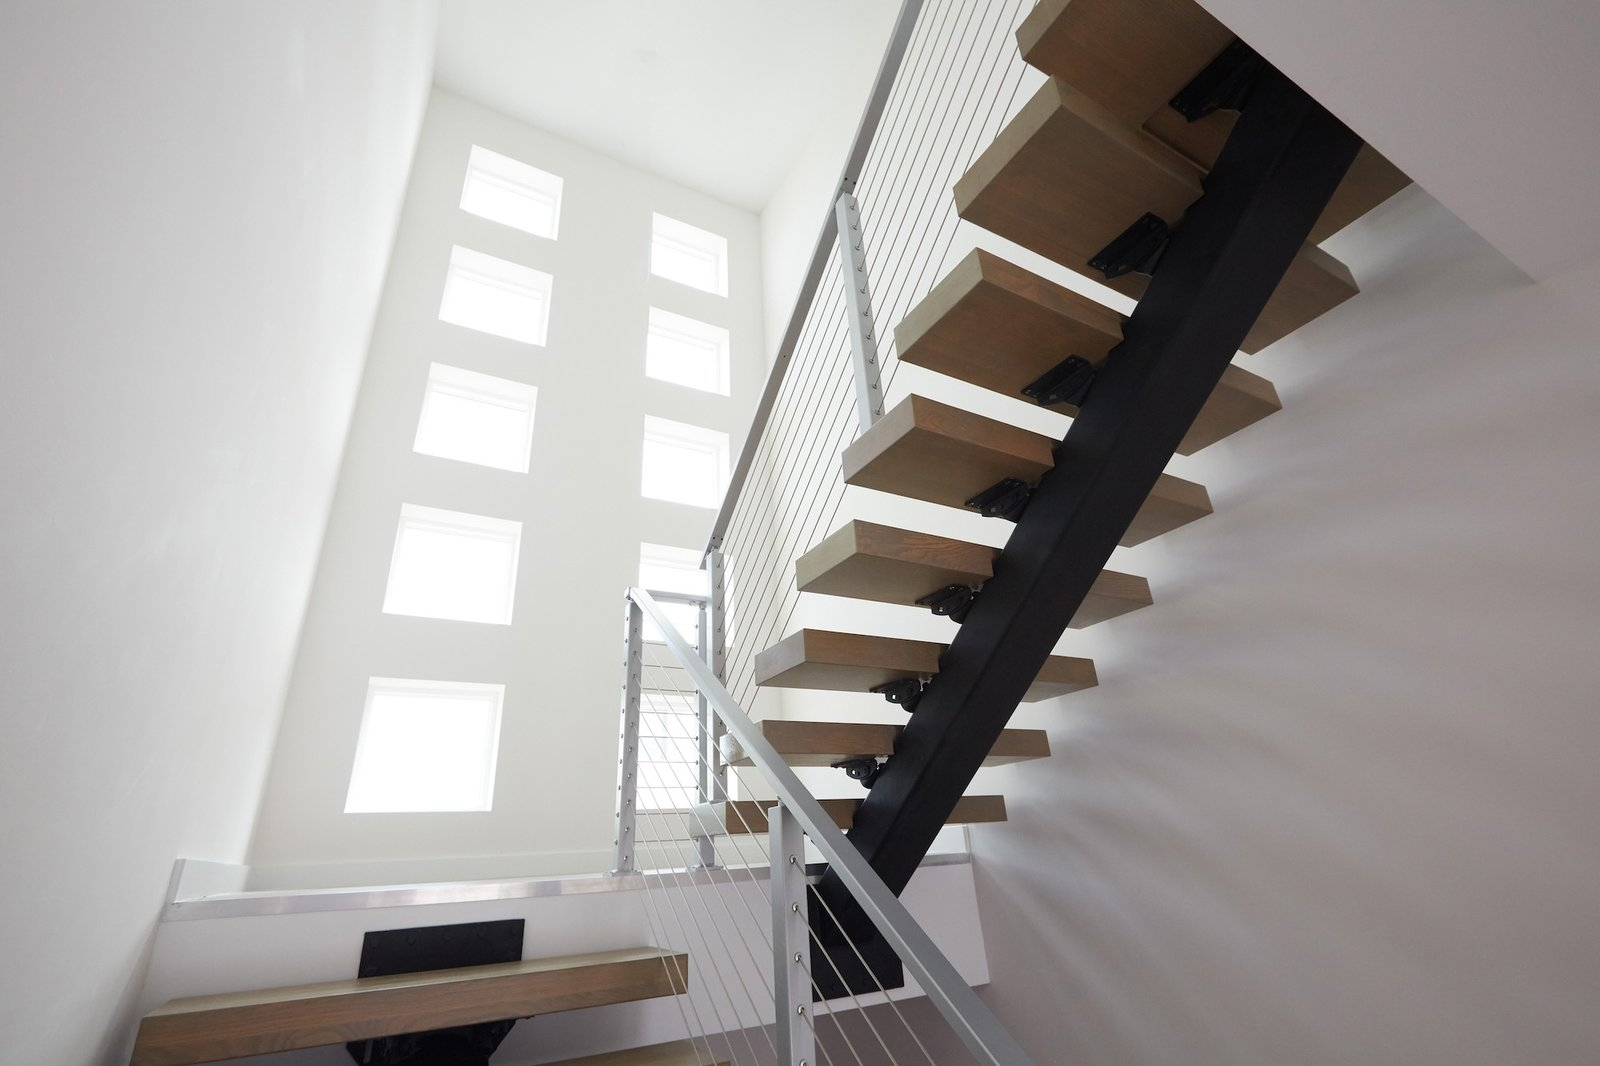 A Modern Stairway That Brings Homes To The Next Level Dwell   Modern Staircase Designs For Homes   Spiral   Steel   Minimalist   Concrete   Awesome